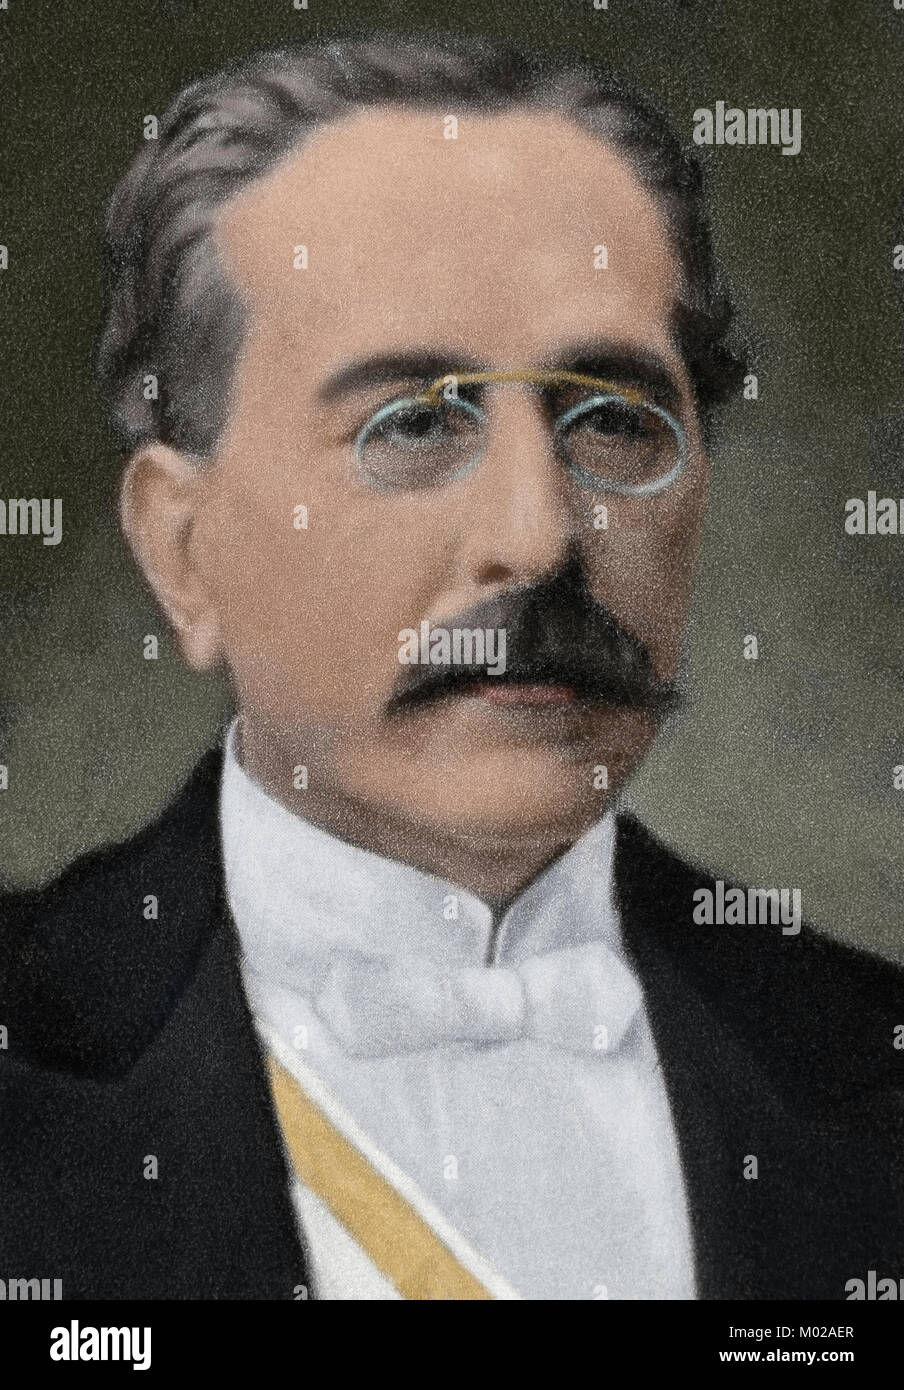 Camilo Fabra and Fontanills (1833-1902). First Marquis of Alella. Industrial, aristocrat and Catalan politician. - Stock Image